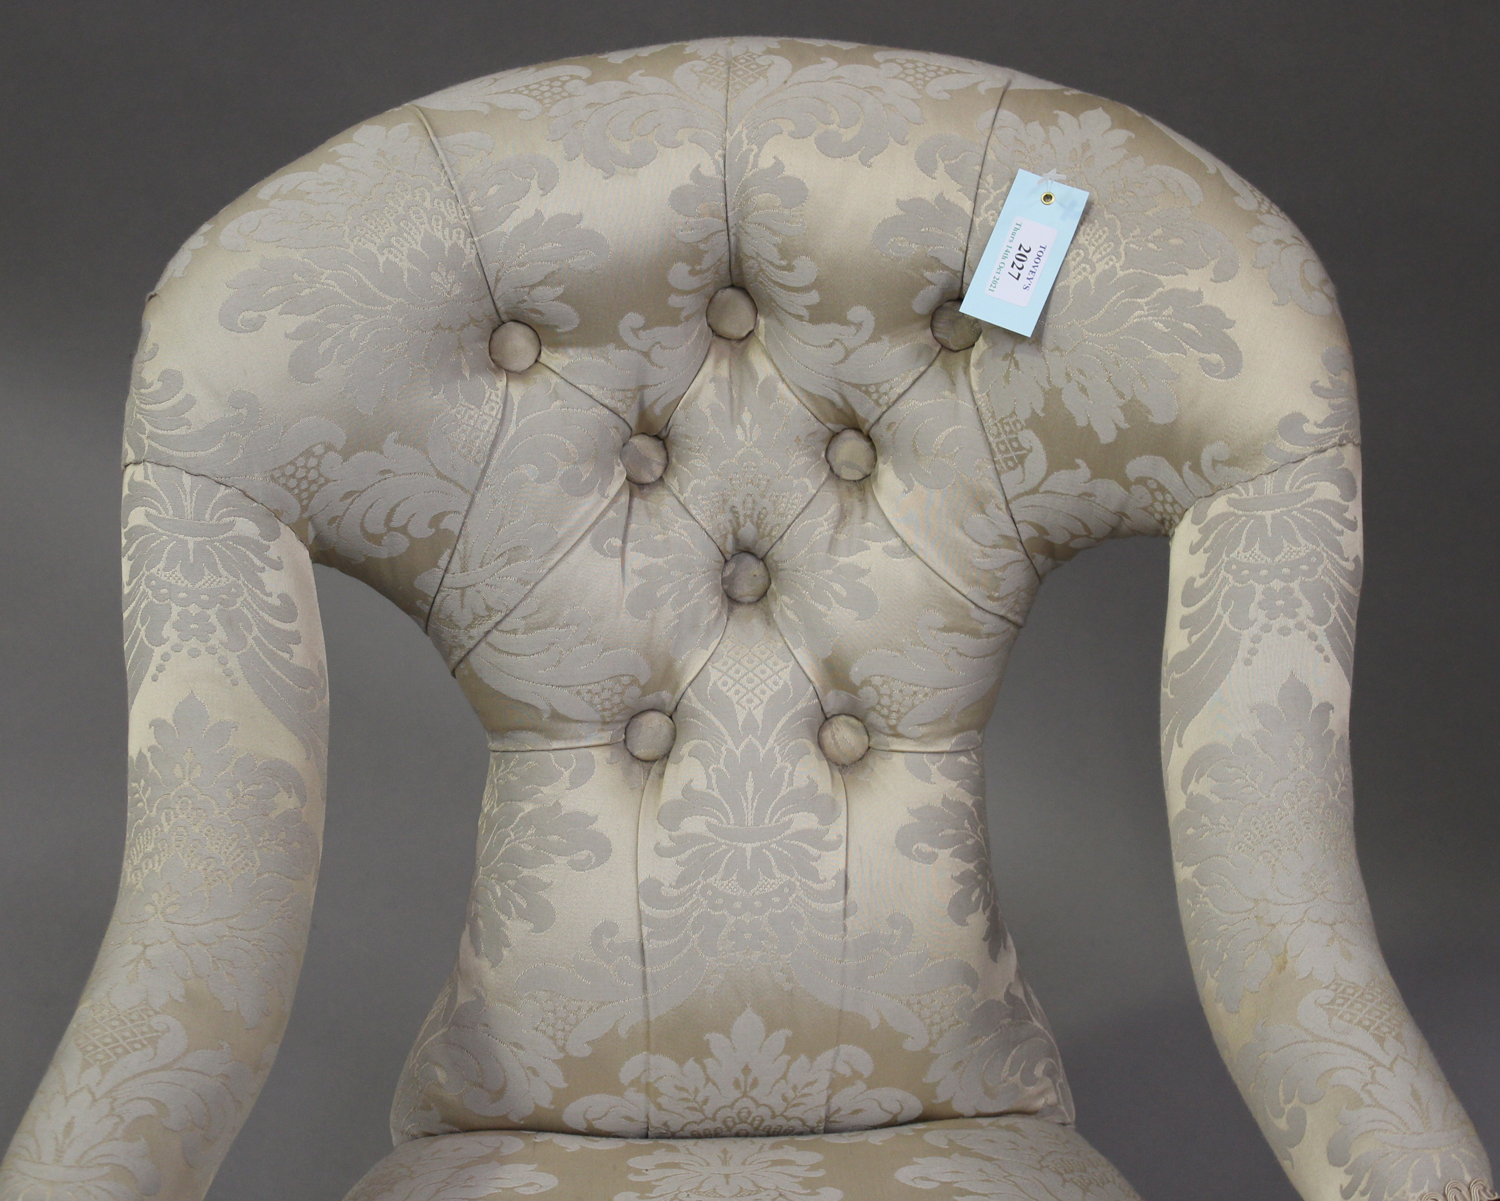 A 19th century mahogany framed scroll armchair, upholstered in blue damask, on barley twist legs, - Image 5 of 5